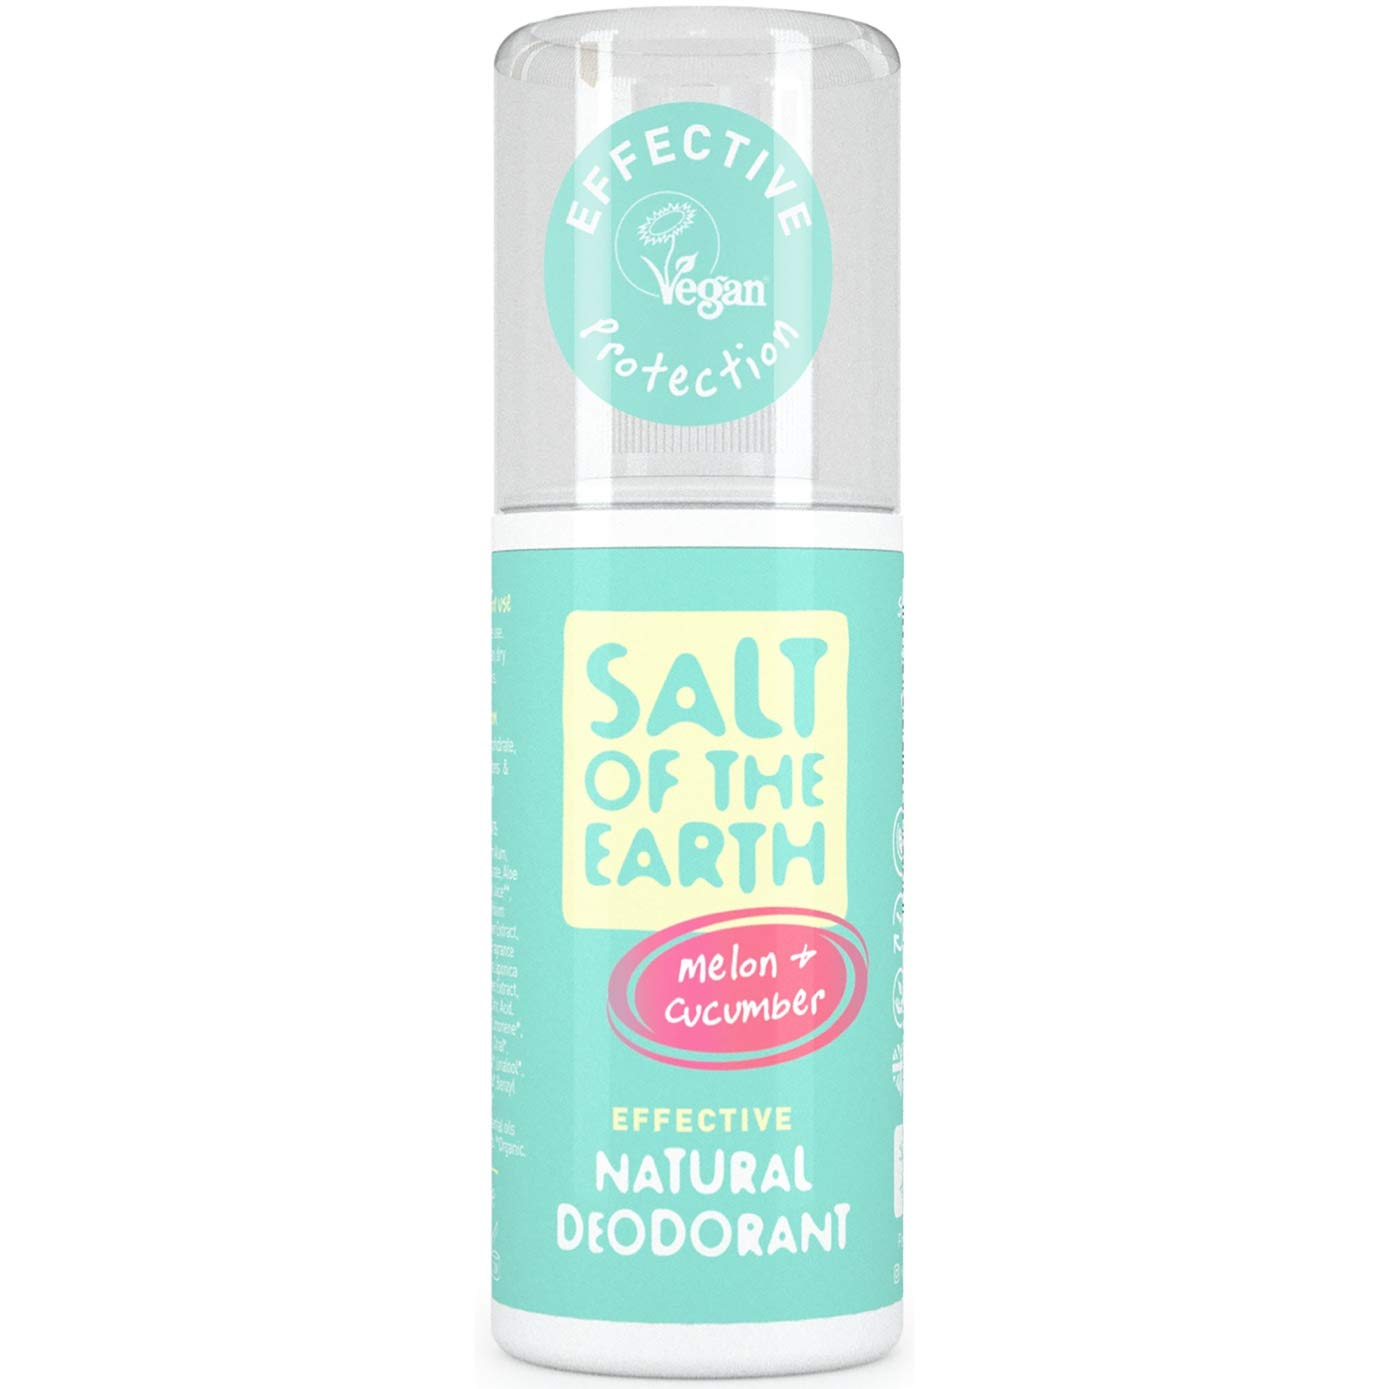 Salt of the Earth Melon and Cucumber Natural Deodorant Spray (100ml)